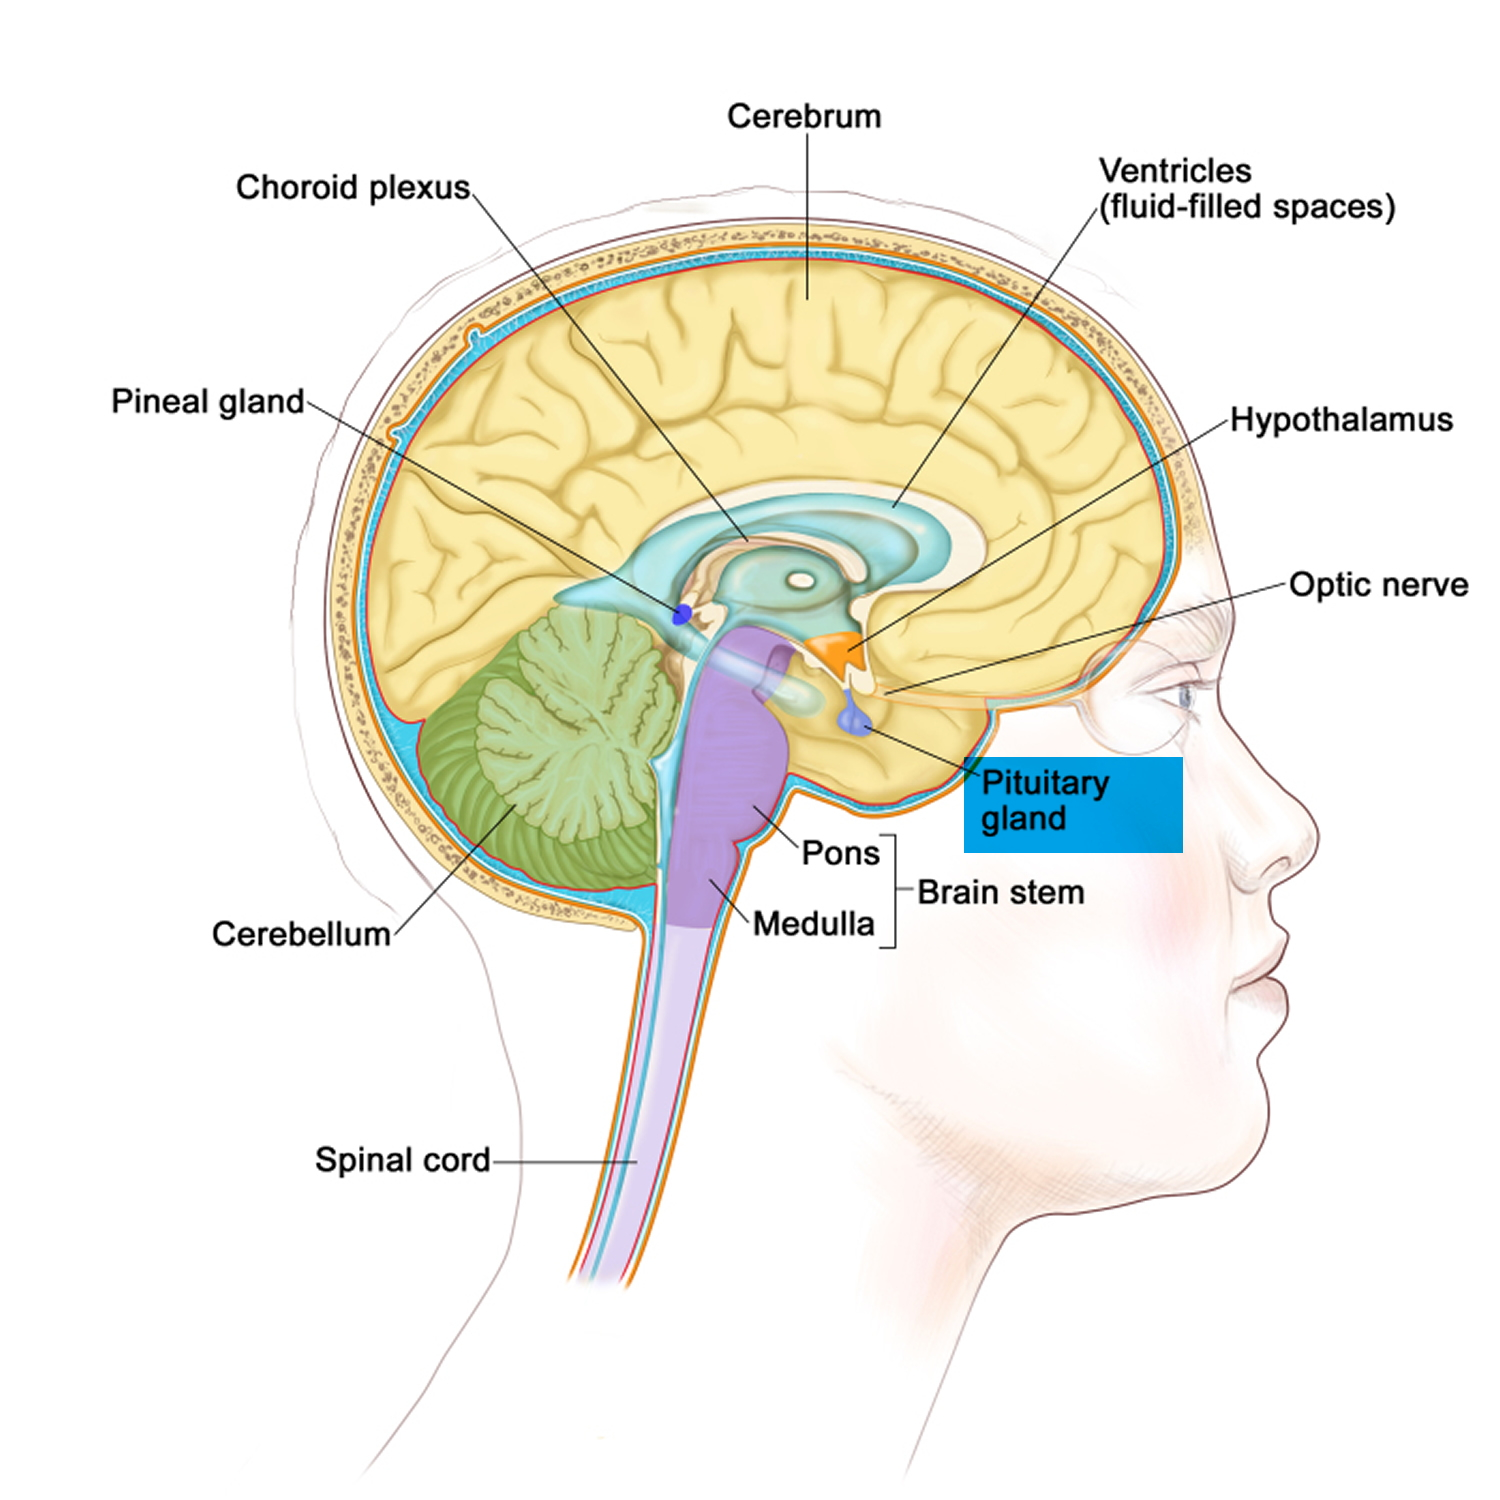 role of the pituitary gland Explain the role of the pituitary gland in maintaining homeostasis identify anatomy of the pituitary gland and nearby structures describe treatment options available for pituitary adenomas and disorders.